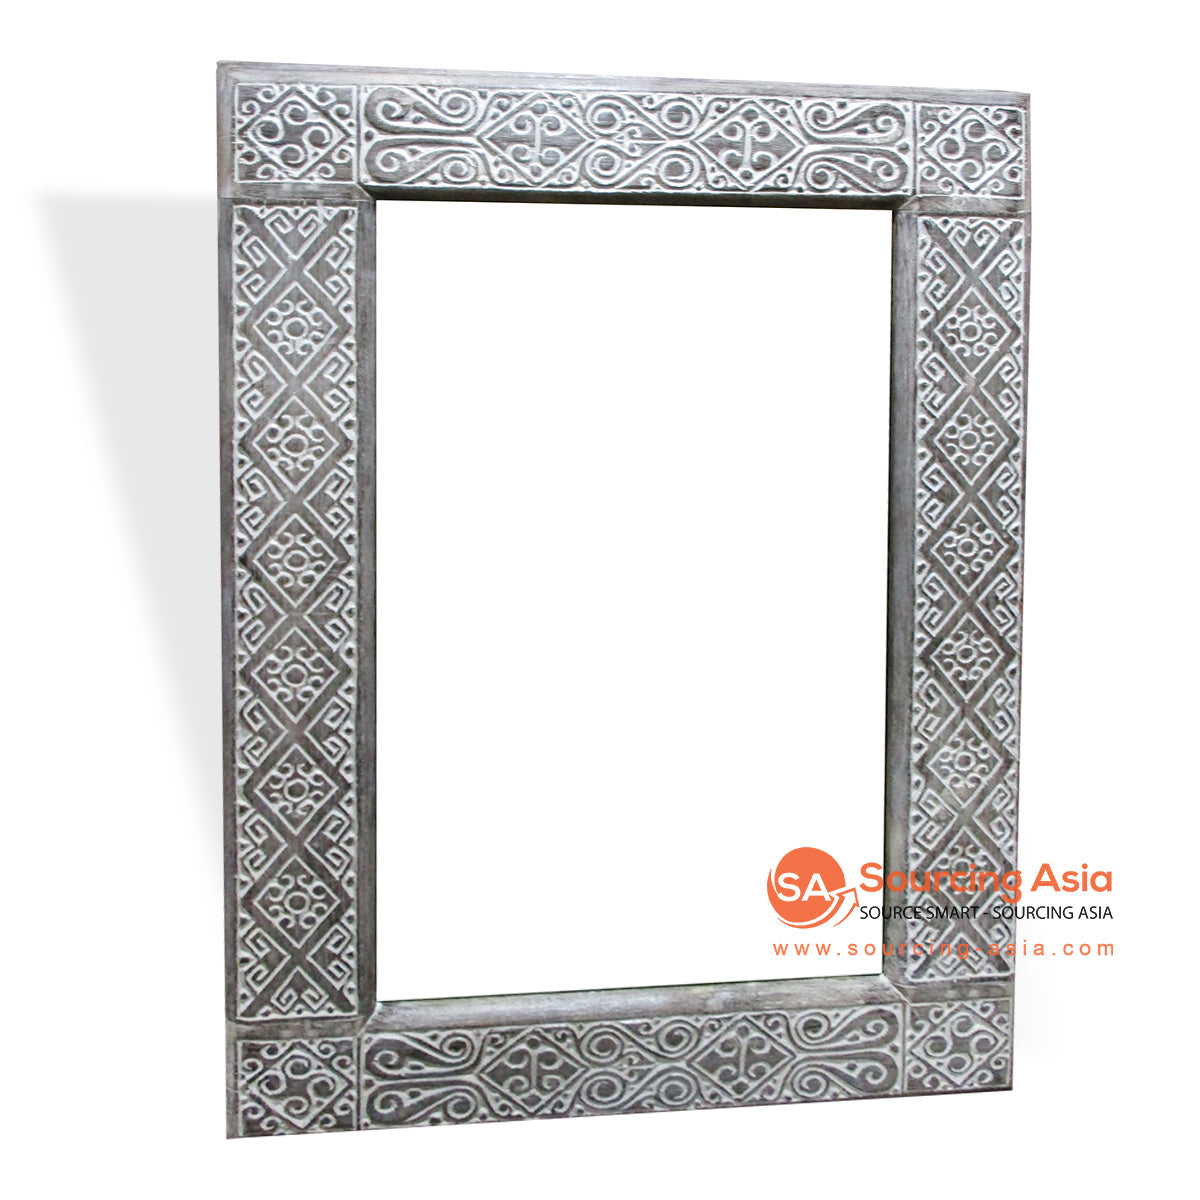 CDA003-3 WOODEN MIRROR WITH CARVING